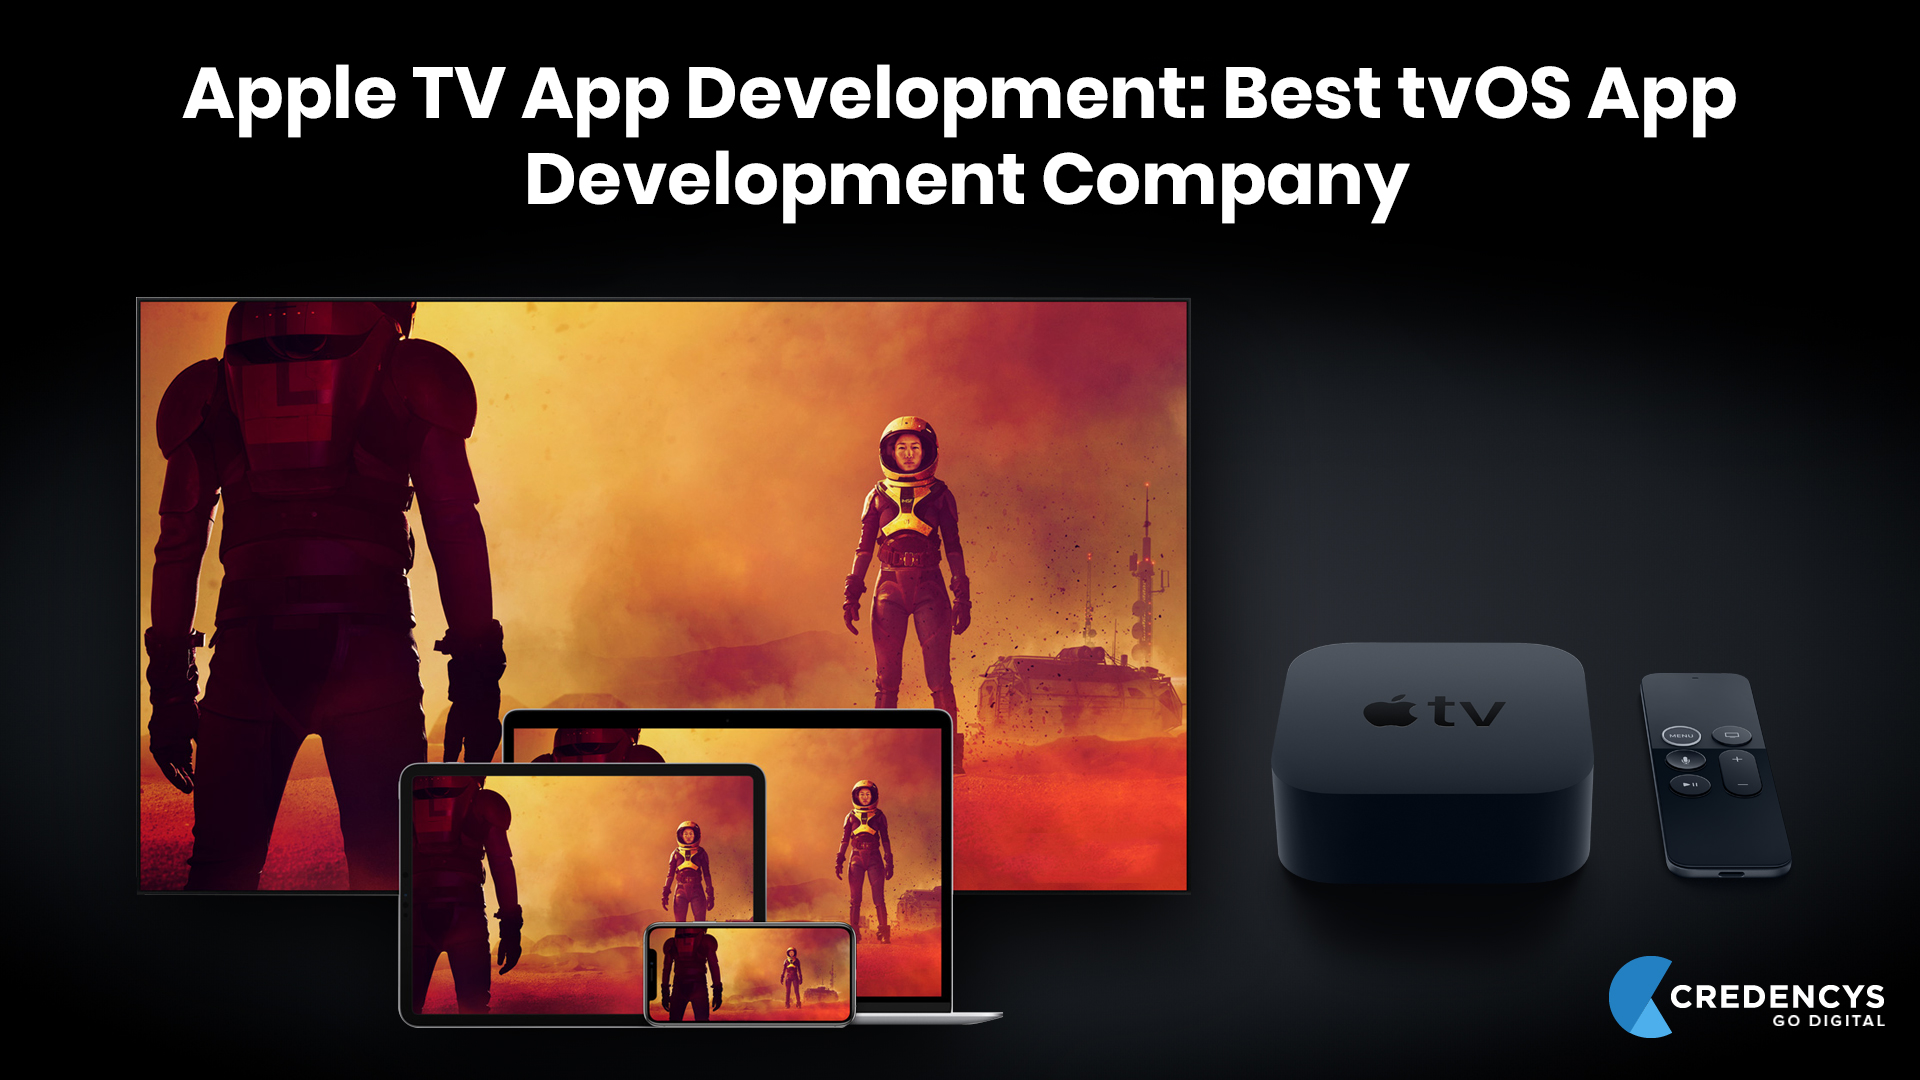 Apple TV App Development: Best tvOS App Development Company